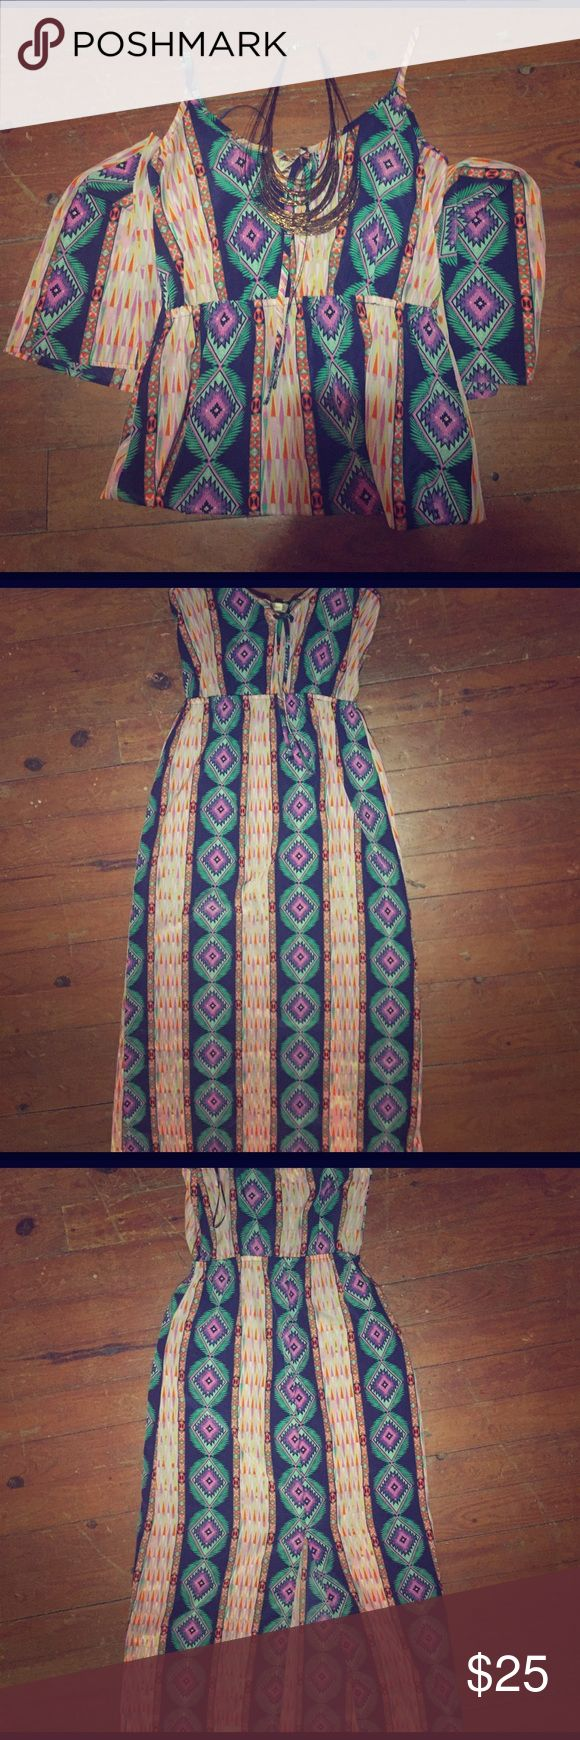 pink rose maxi dress a beautiful maxi dress multicolor spaghetti strap keyhole opening